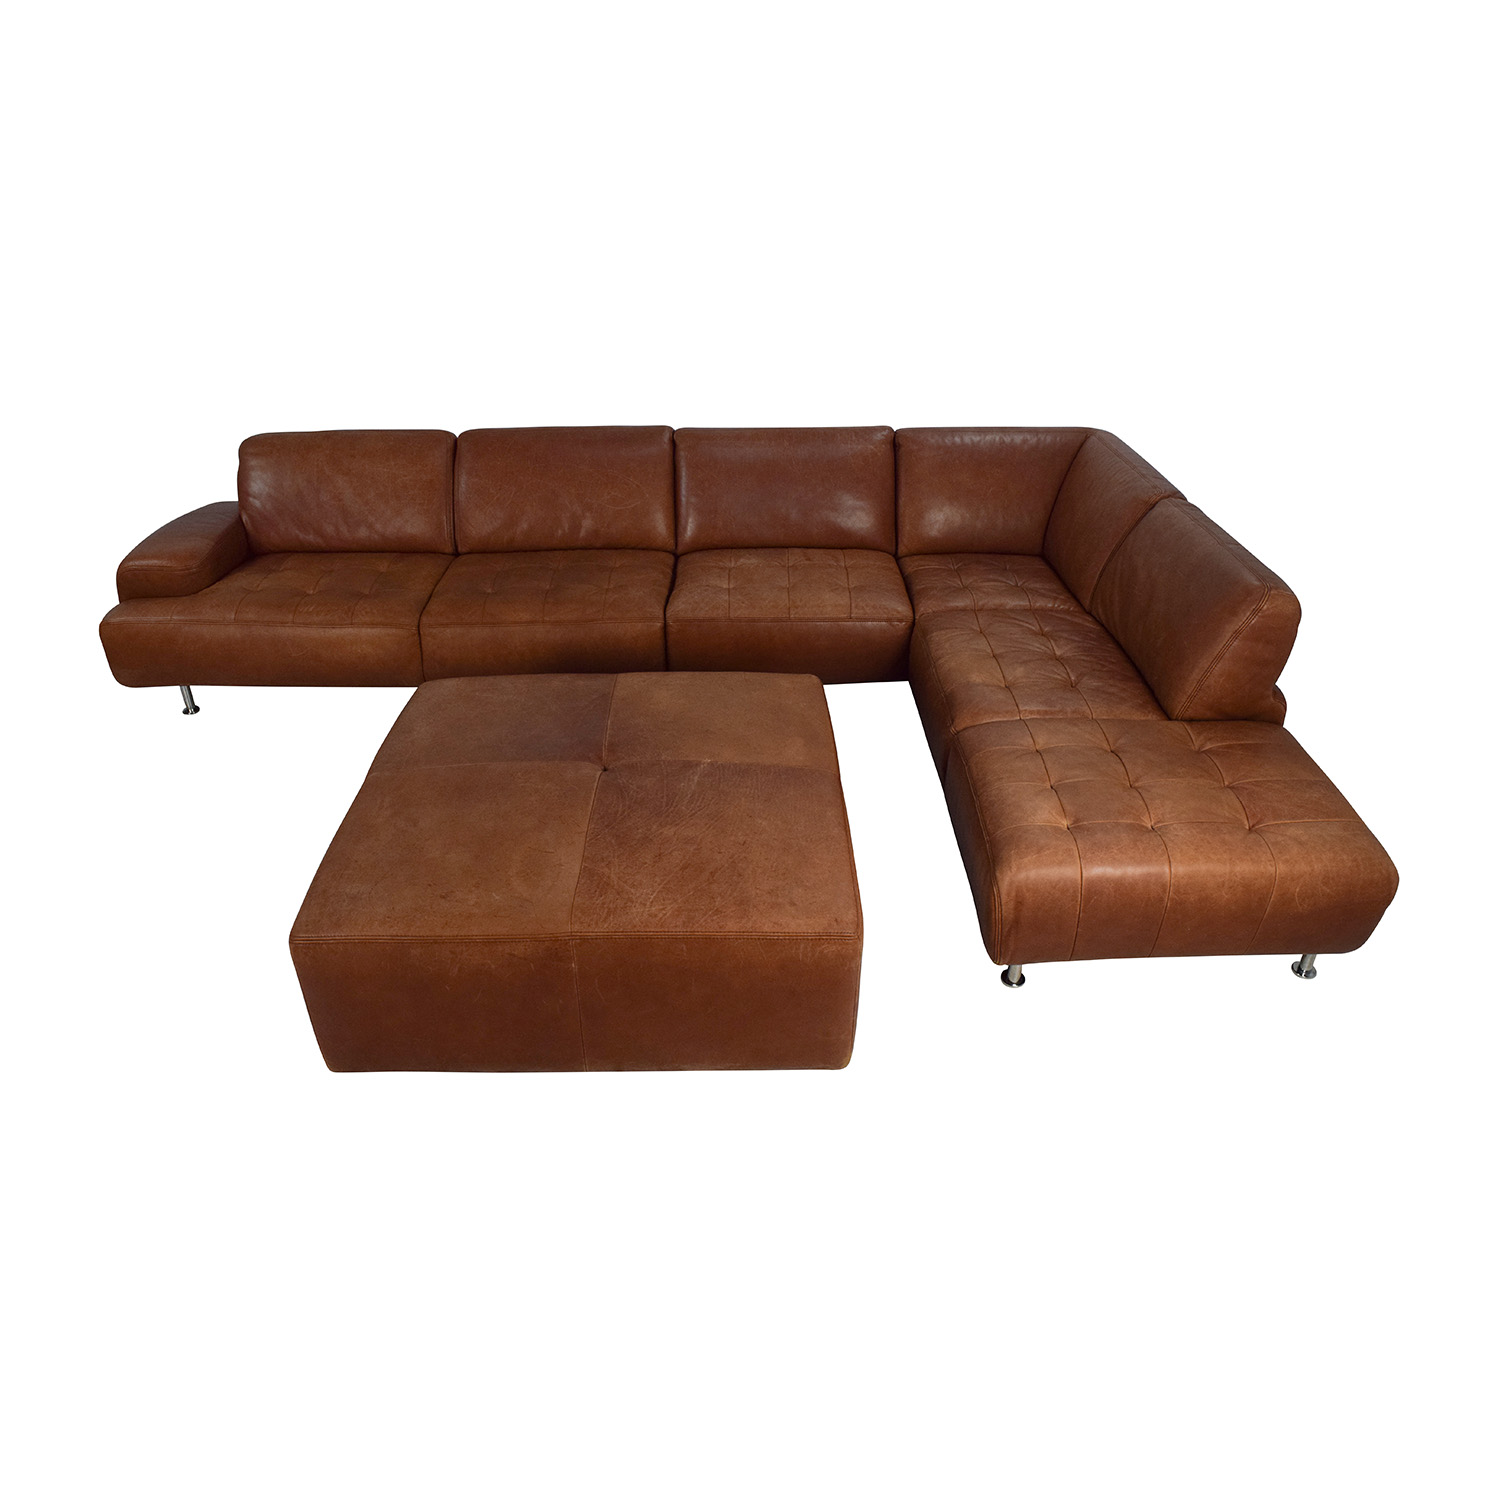 W. Schillig Leather Sectional and Ottoman W.Schillig